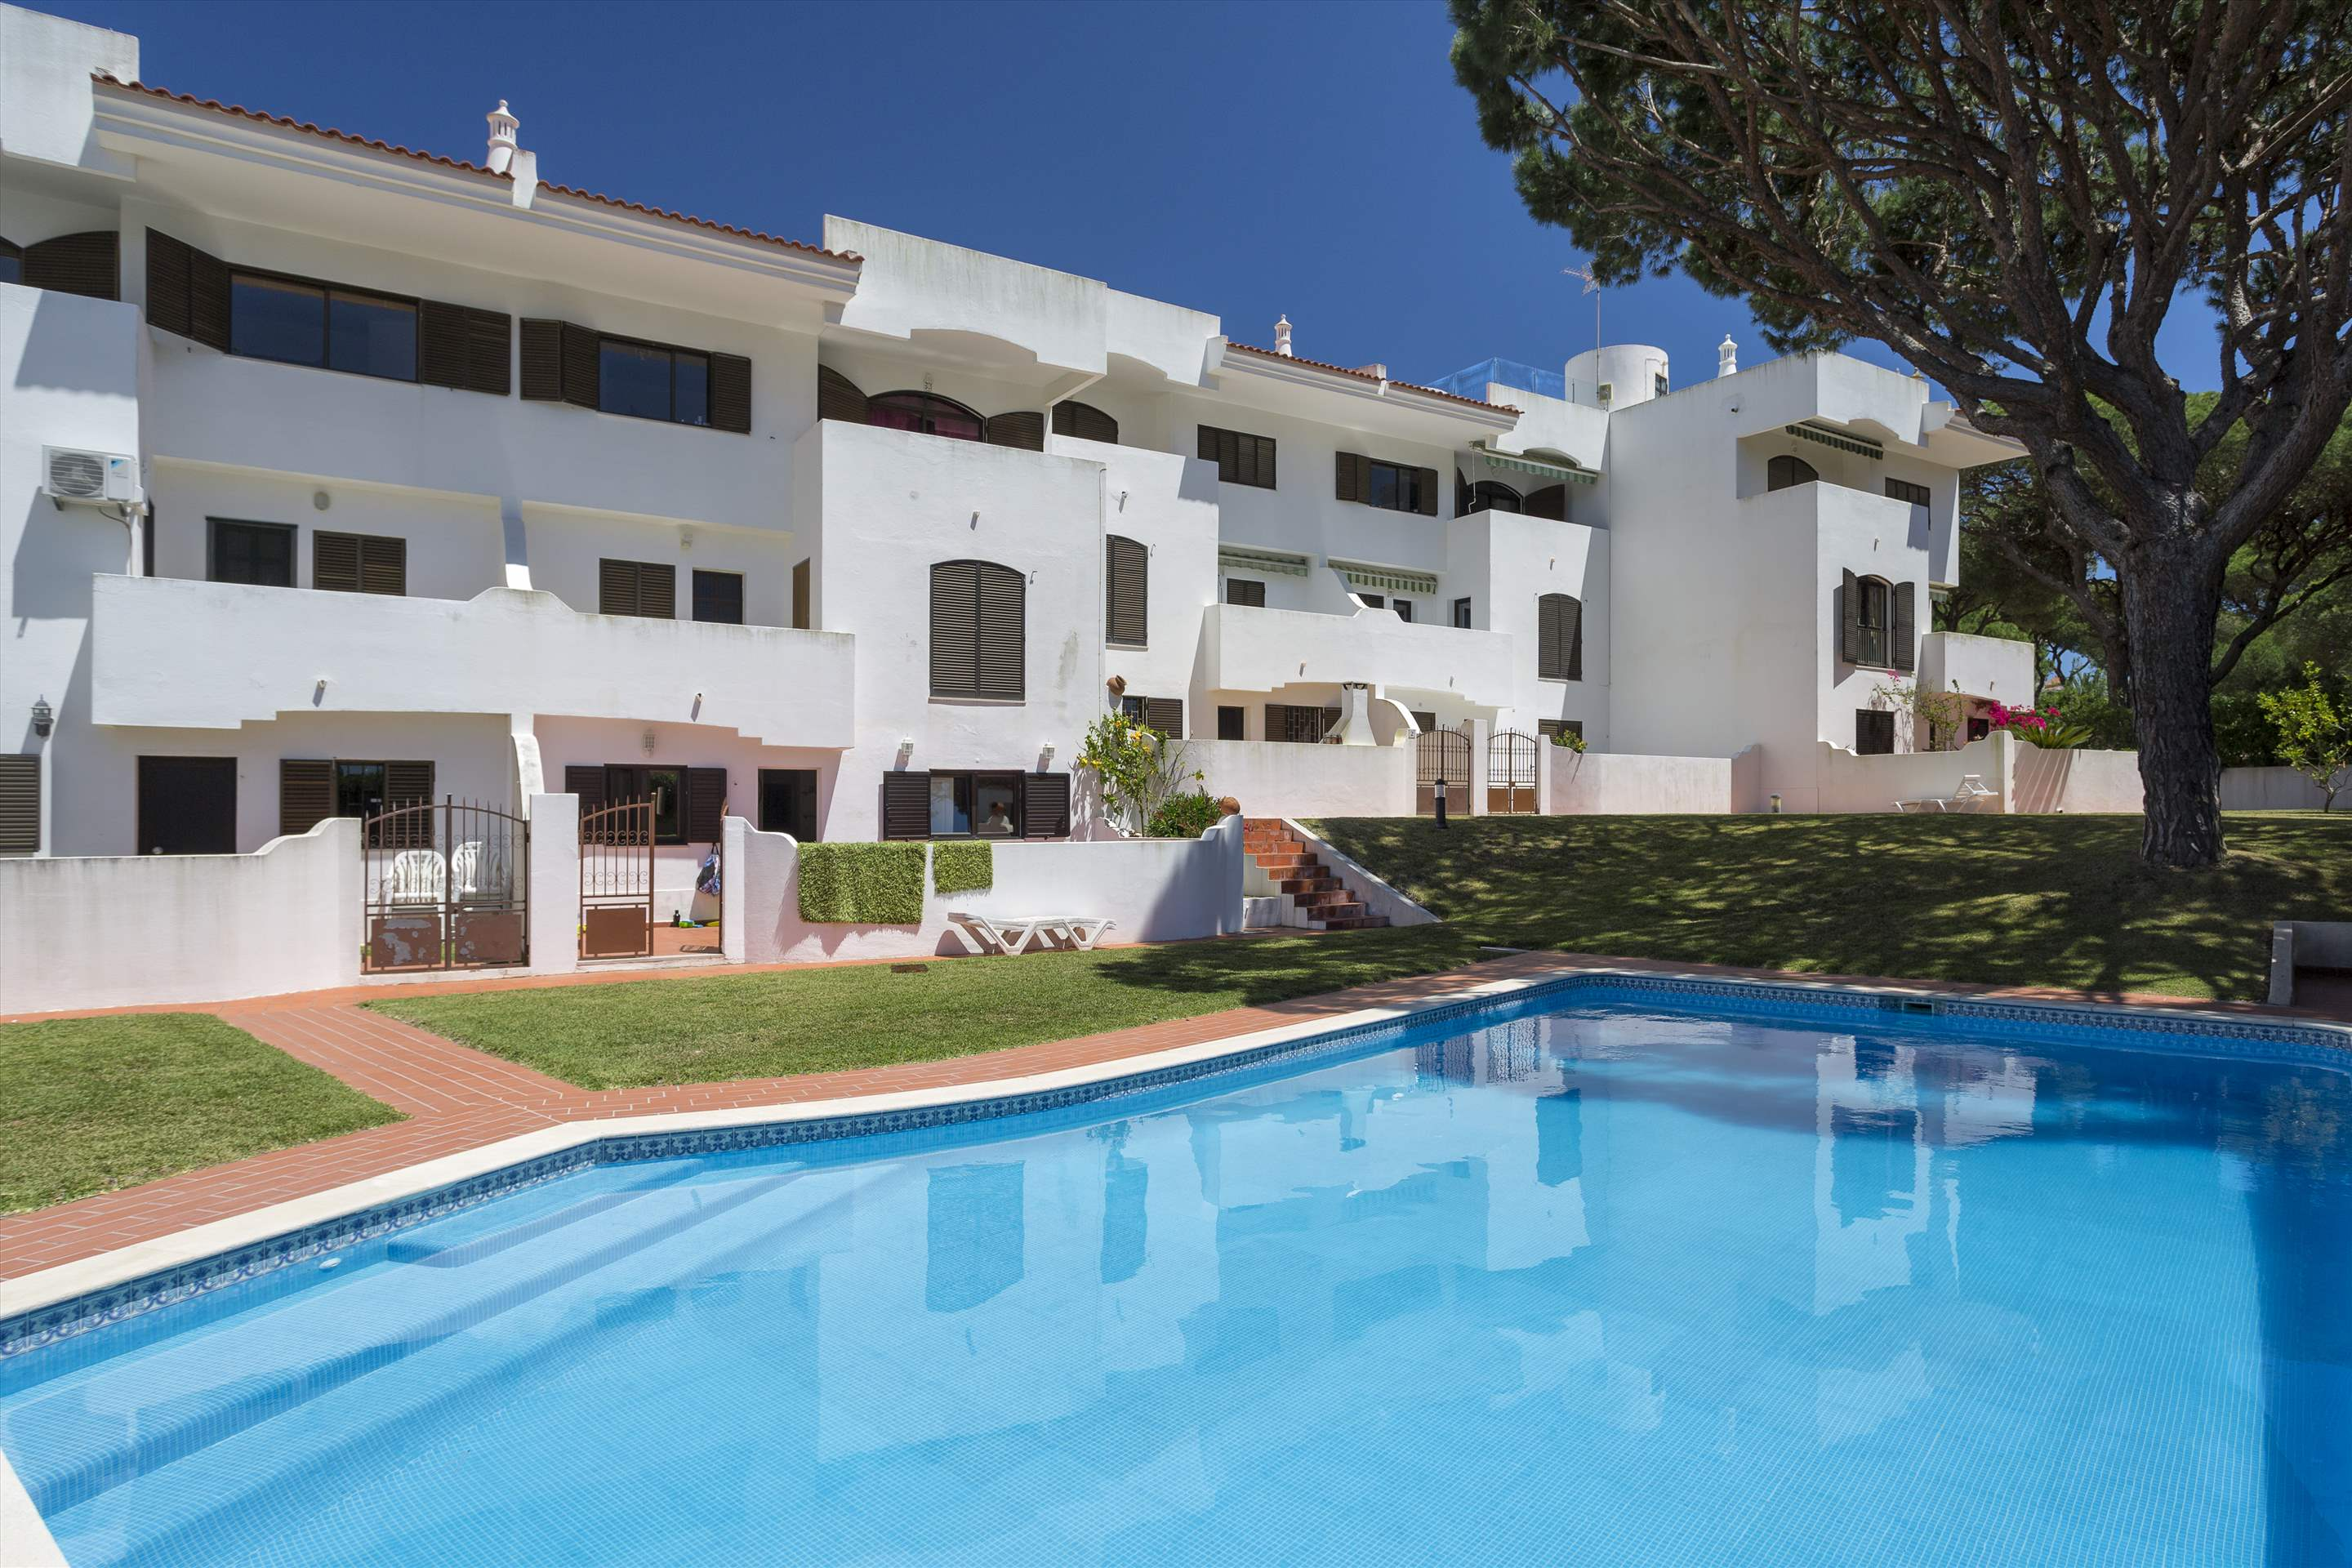 Apartment Jardim do Mar : 2 bedroom apartment in Vilamoura ...